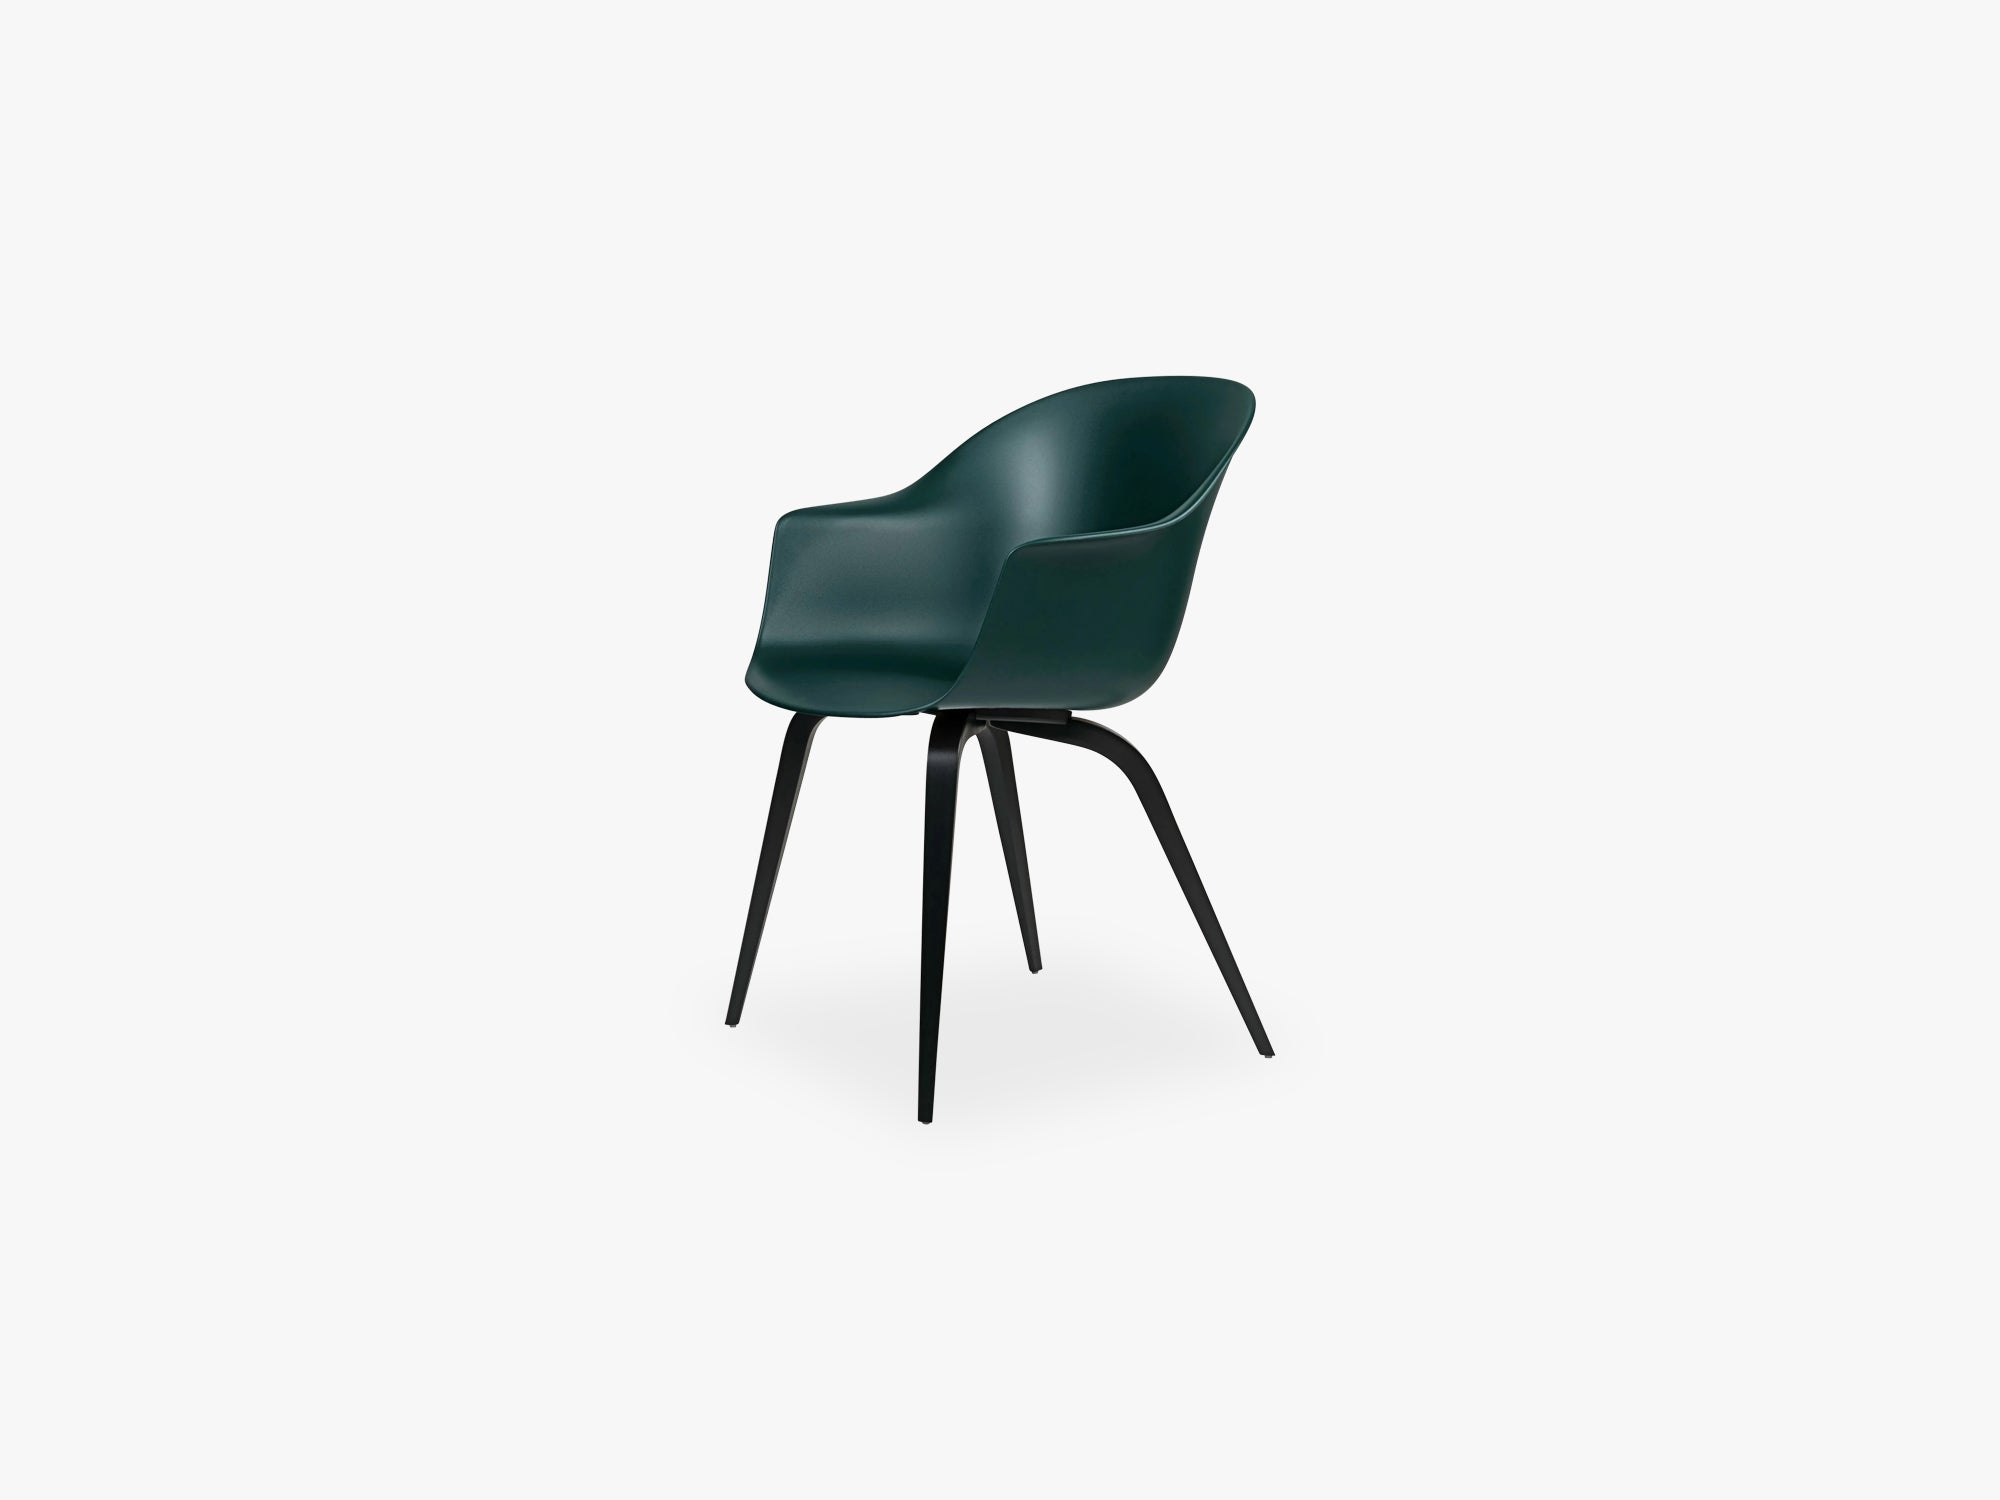 Bat Dining Chair - Skal m Wood base - Black Stained Beech Semi Matt, Dark Green fra GUBI